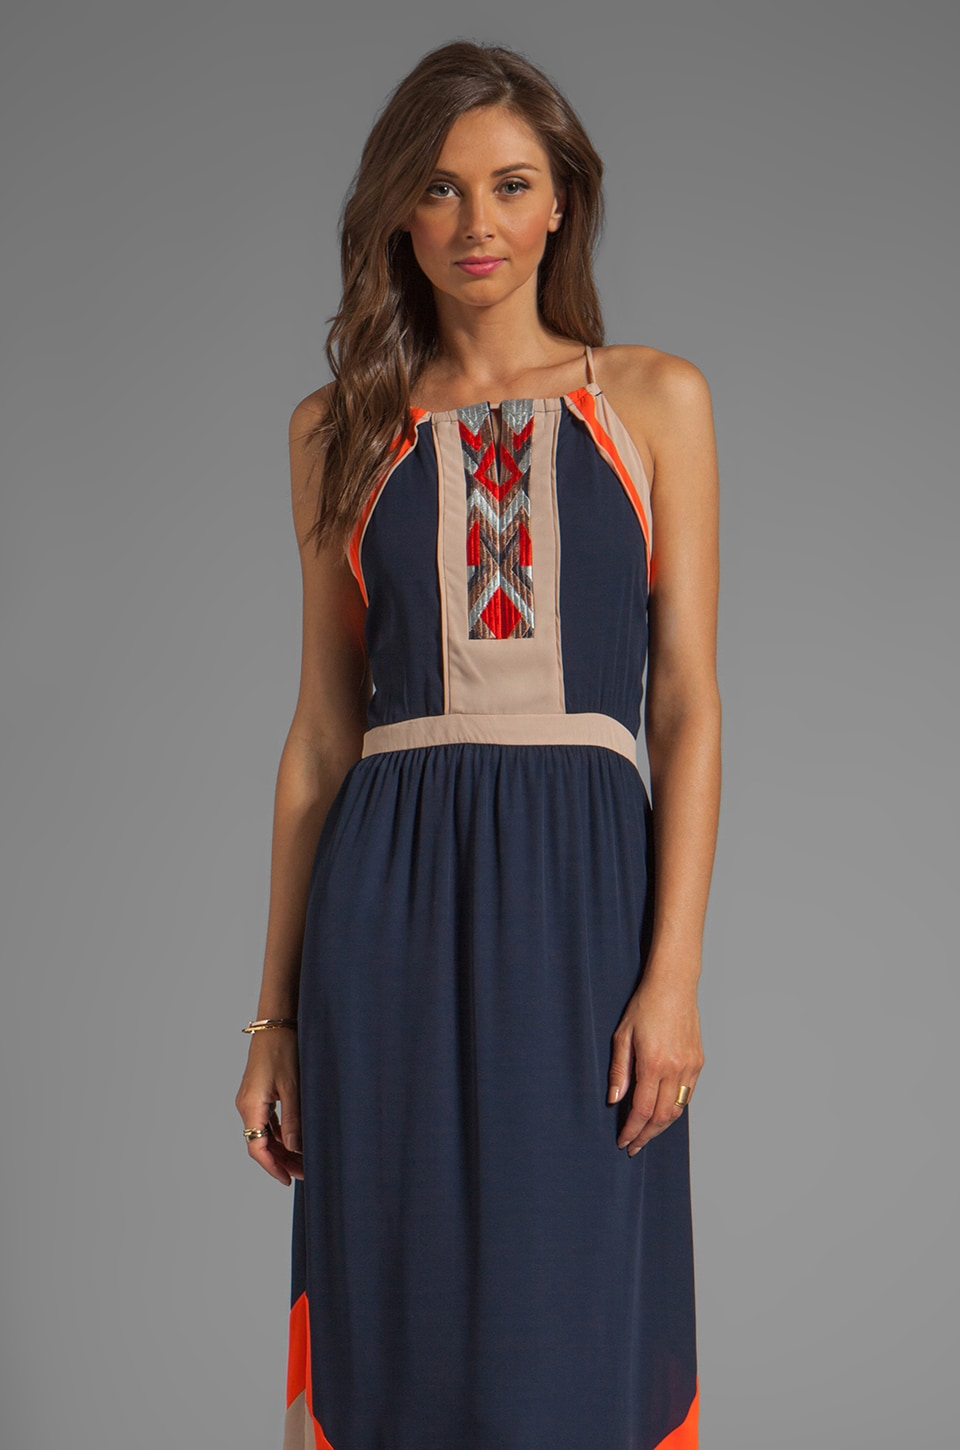 Greylin Amanda Embroidered Maxi Dress in Navy